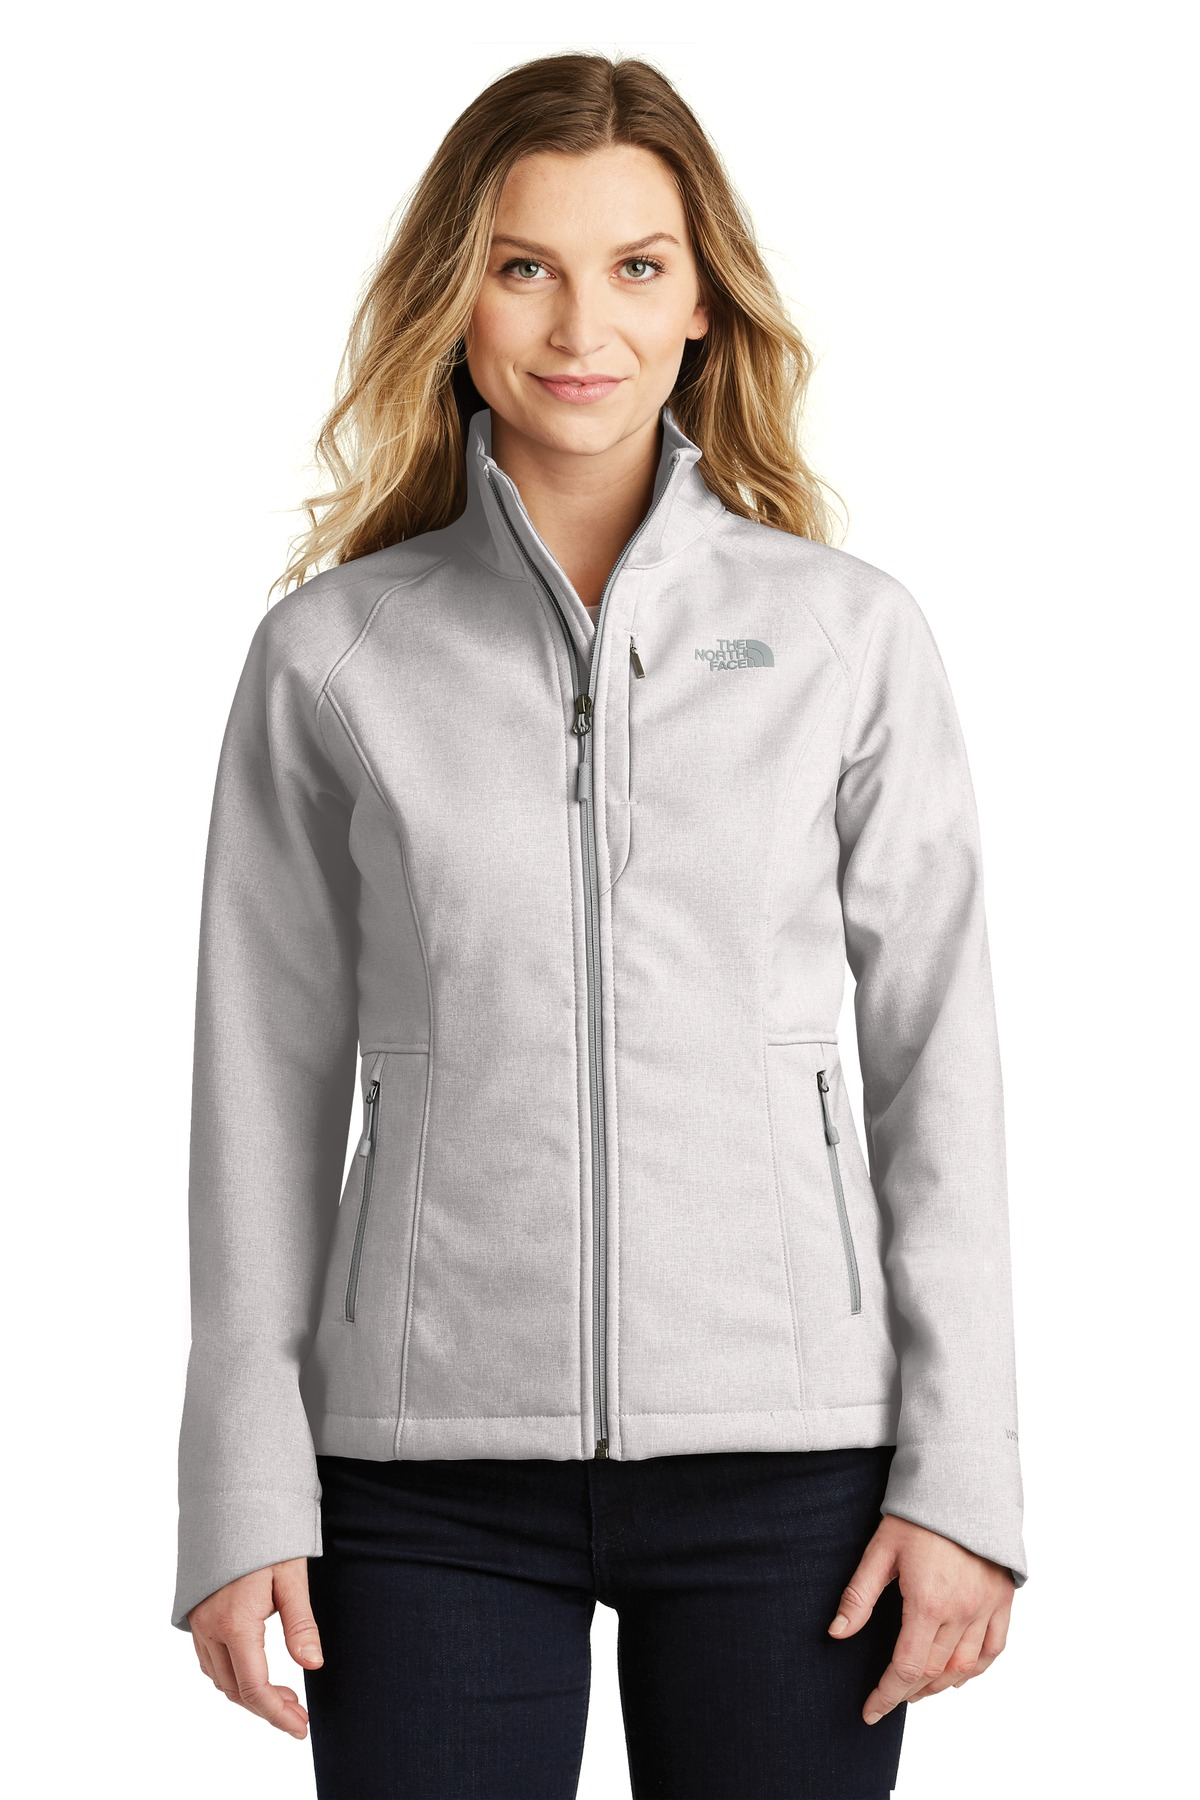 The North Face  ®  Ladies Apex Barrier Soft Shell Jacket. NF0A3LGU - TNF Light Grey Heather